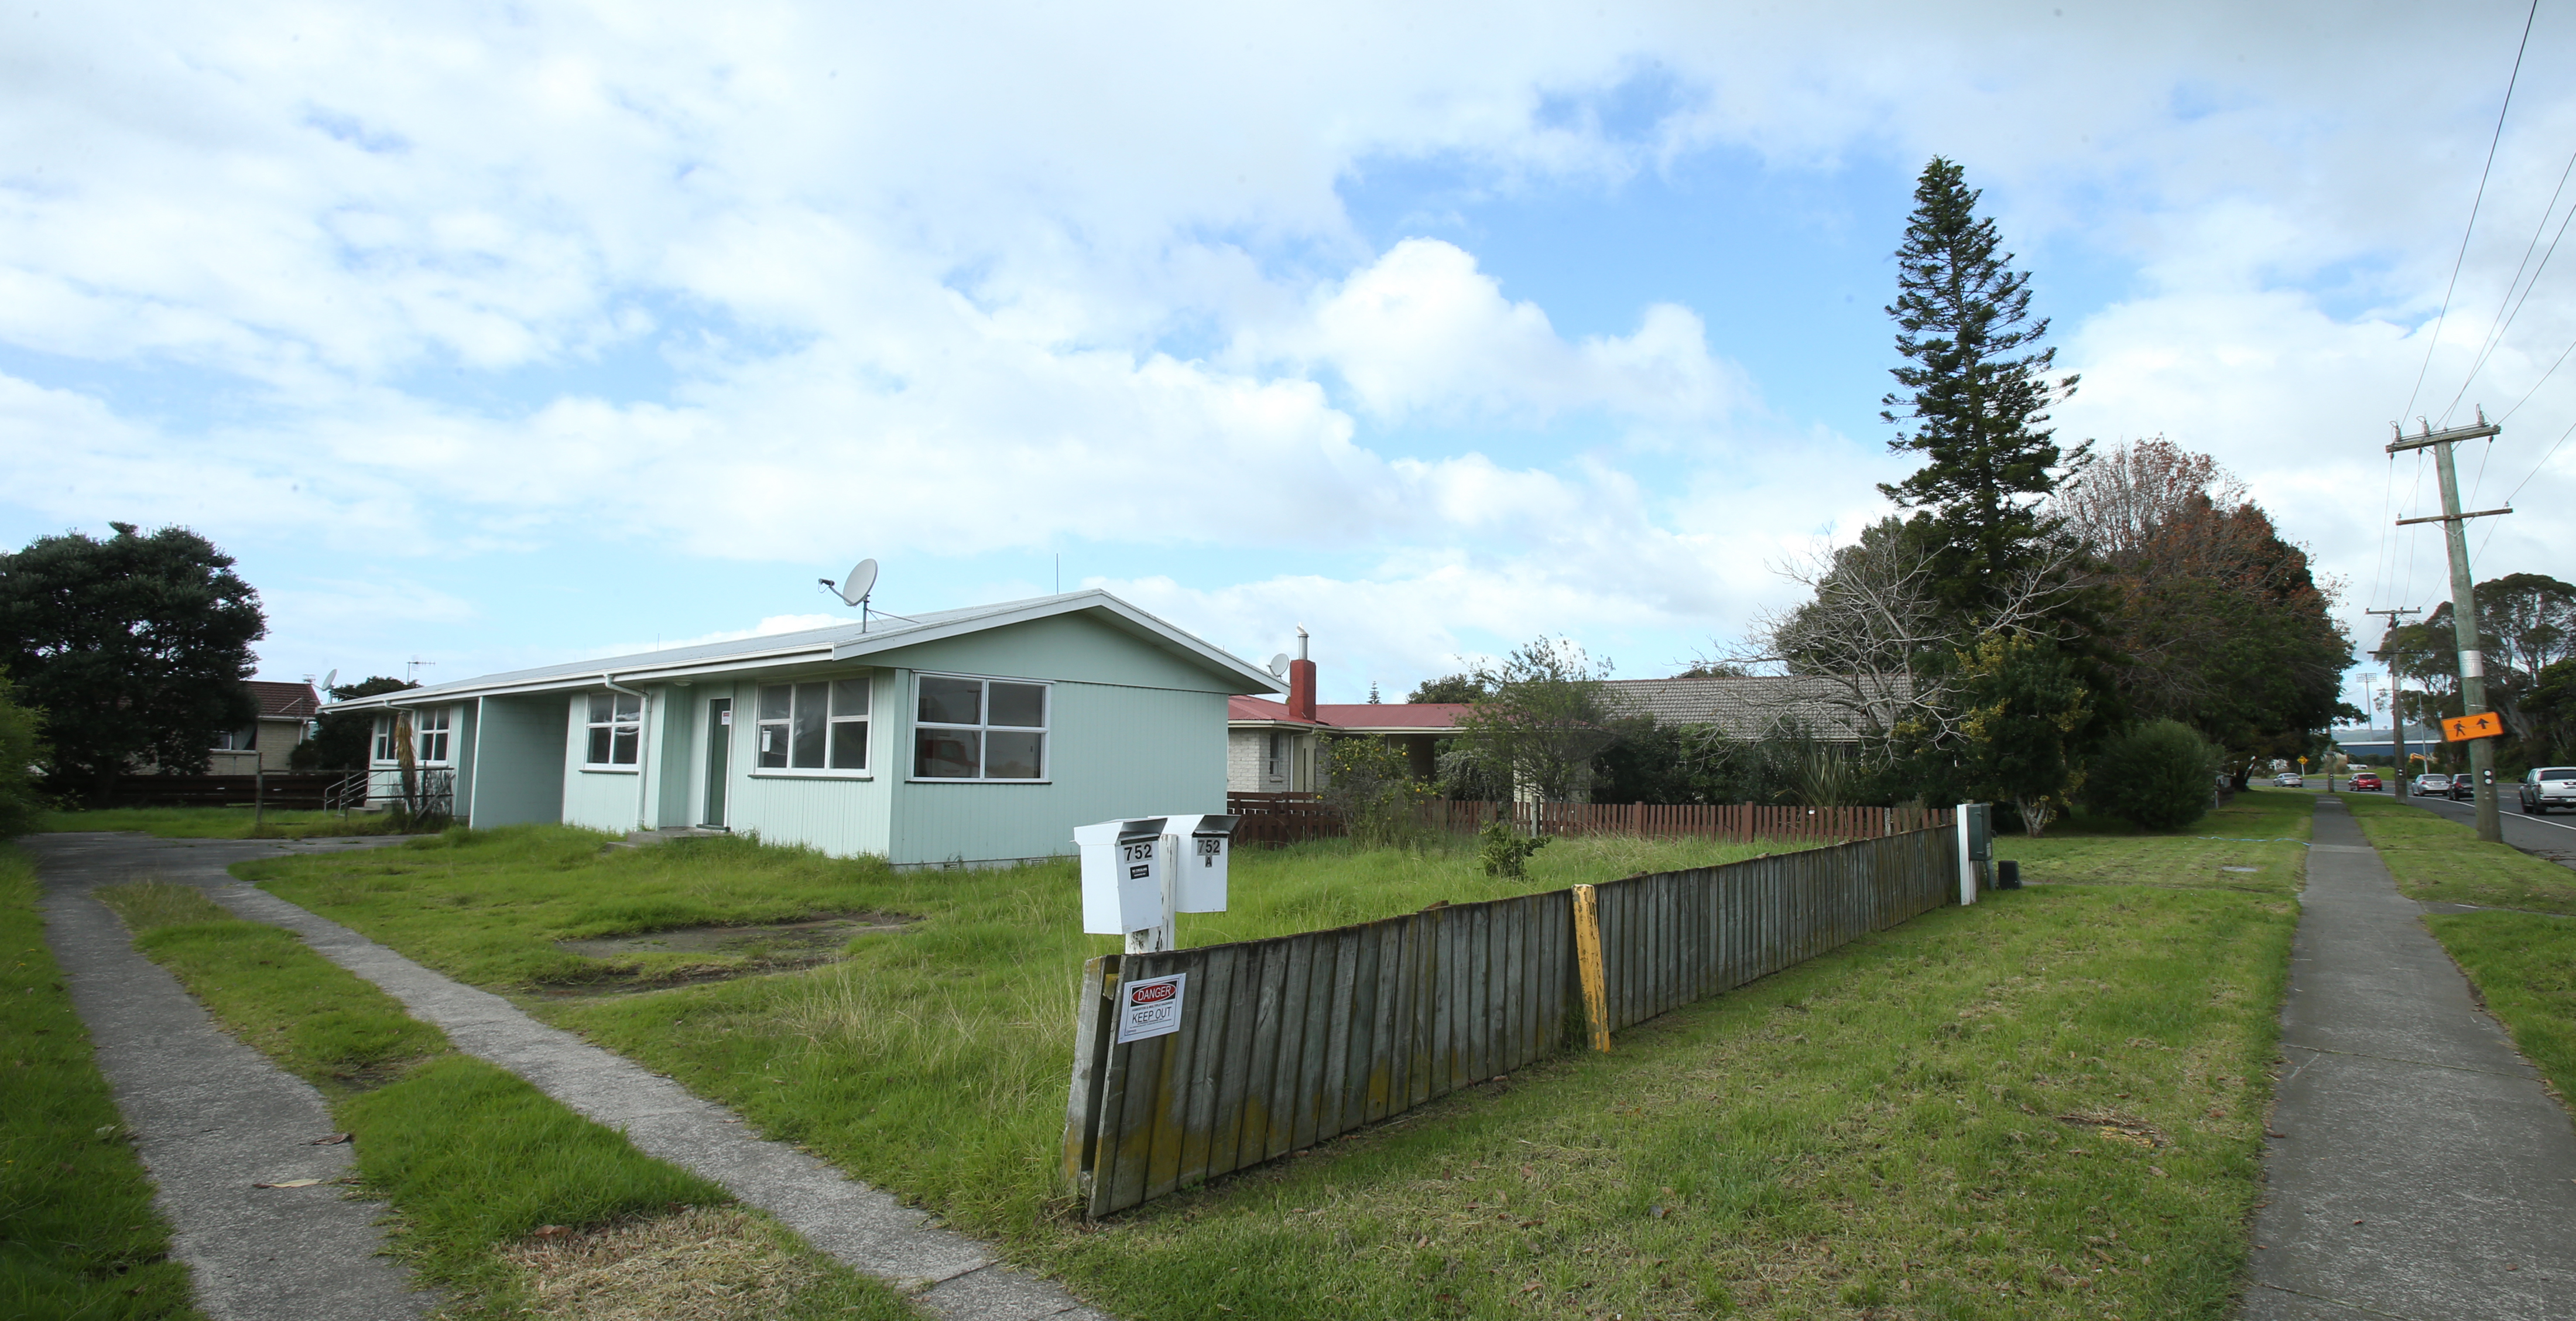 Over 200 Bay people on housing waiting list - NZ Herald